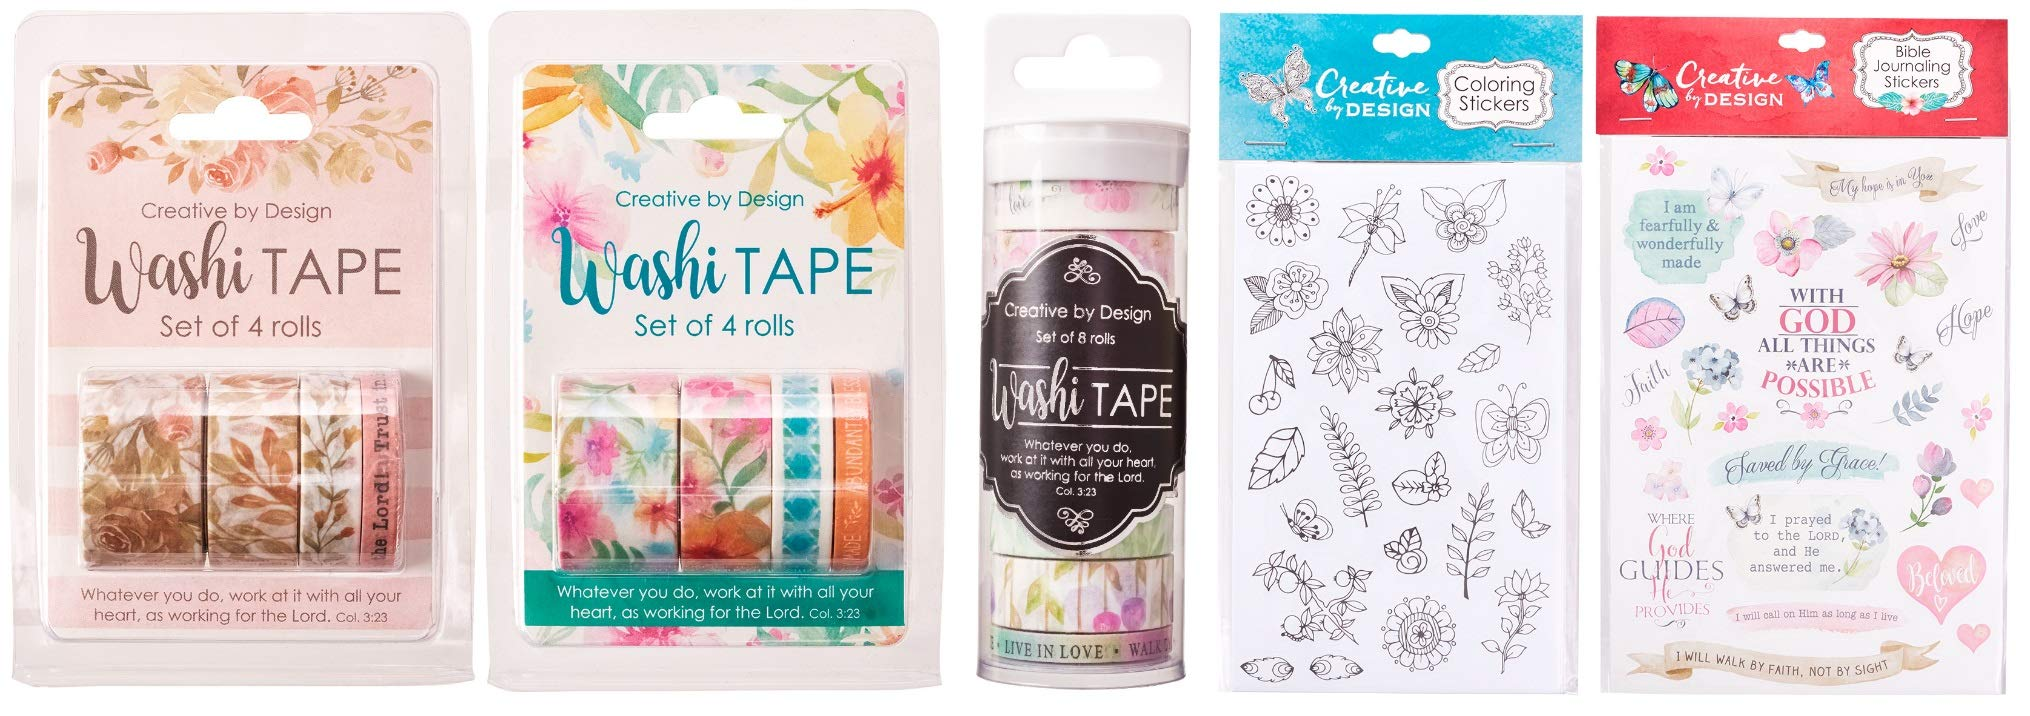 Bible Journaling Washi Tape and Stickers Bundle   16 Rolls of Tape and 210 Stickers for Faith Scrapbooking, Planners and Journals   by Christian Art Gifts